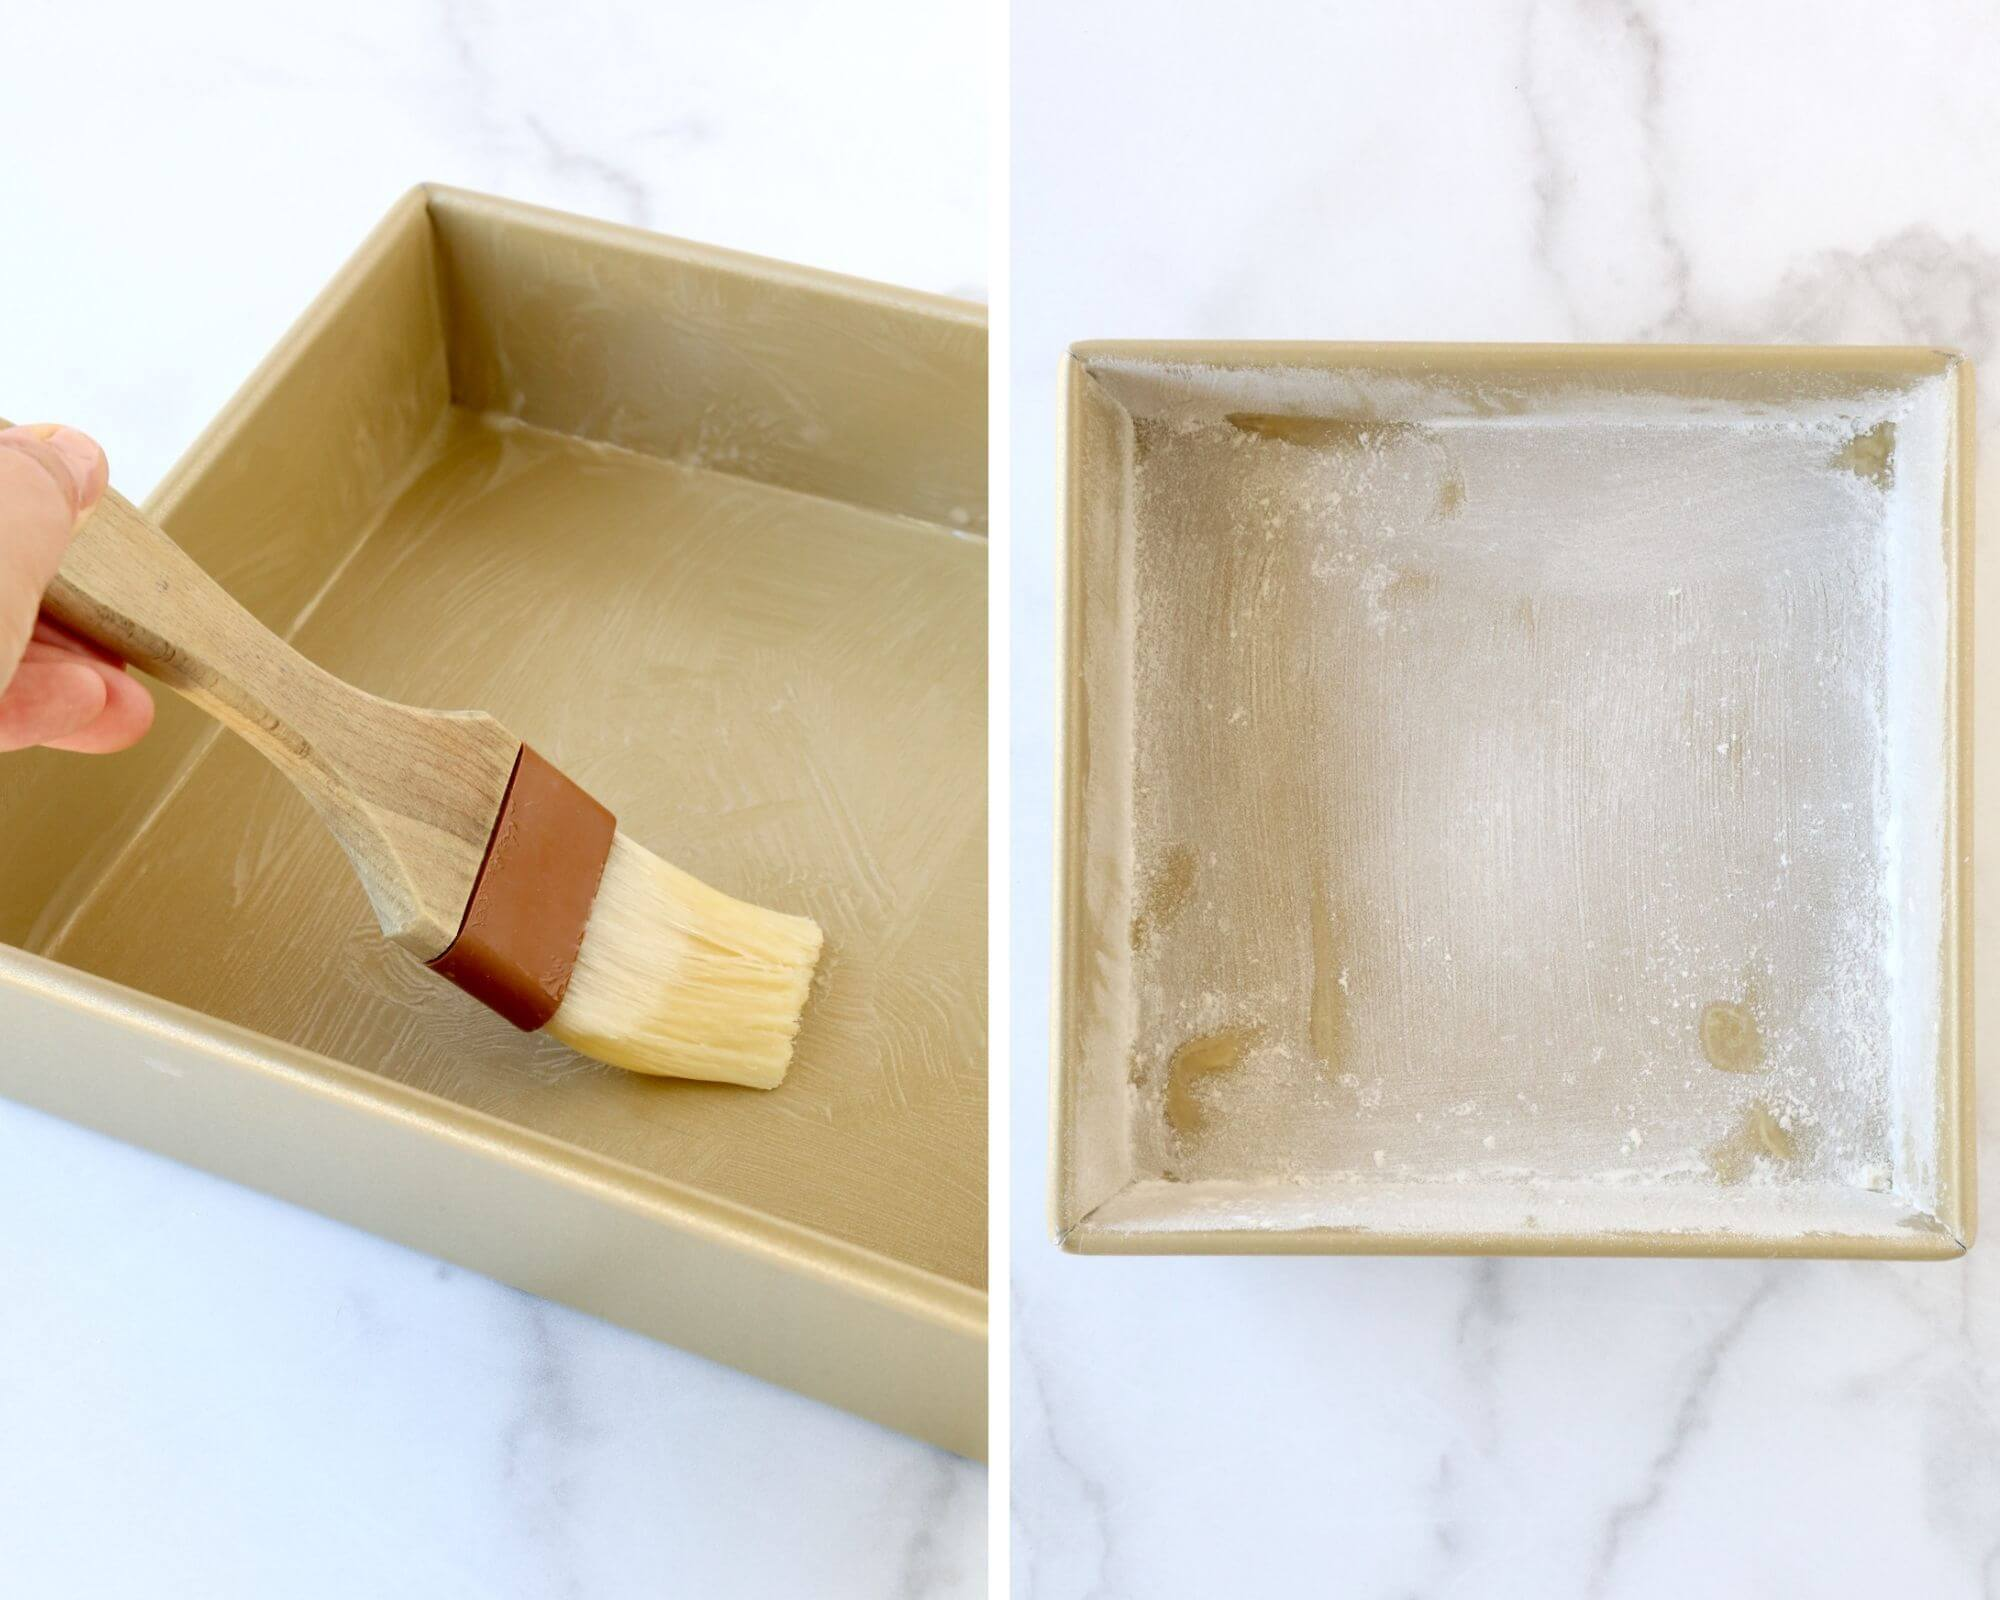 A gold square cake pan getting brushed with melted butter next to a square cake pan that has been dusted with flour.